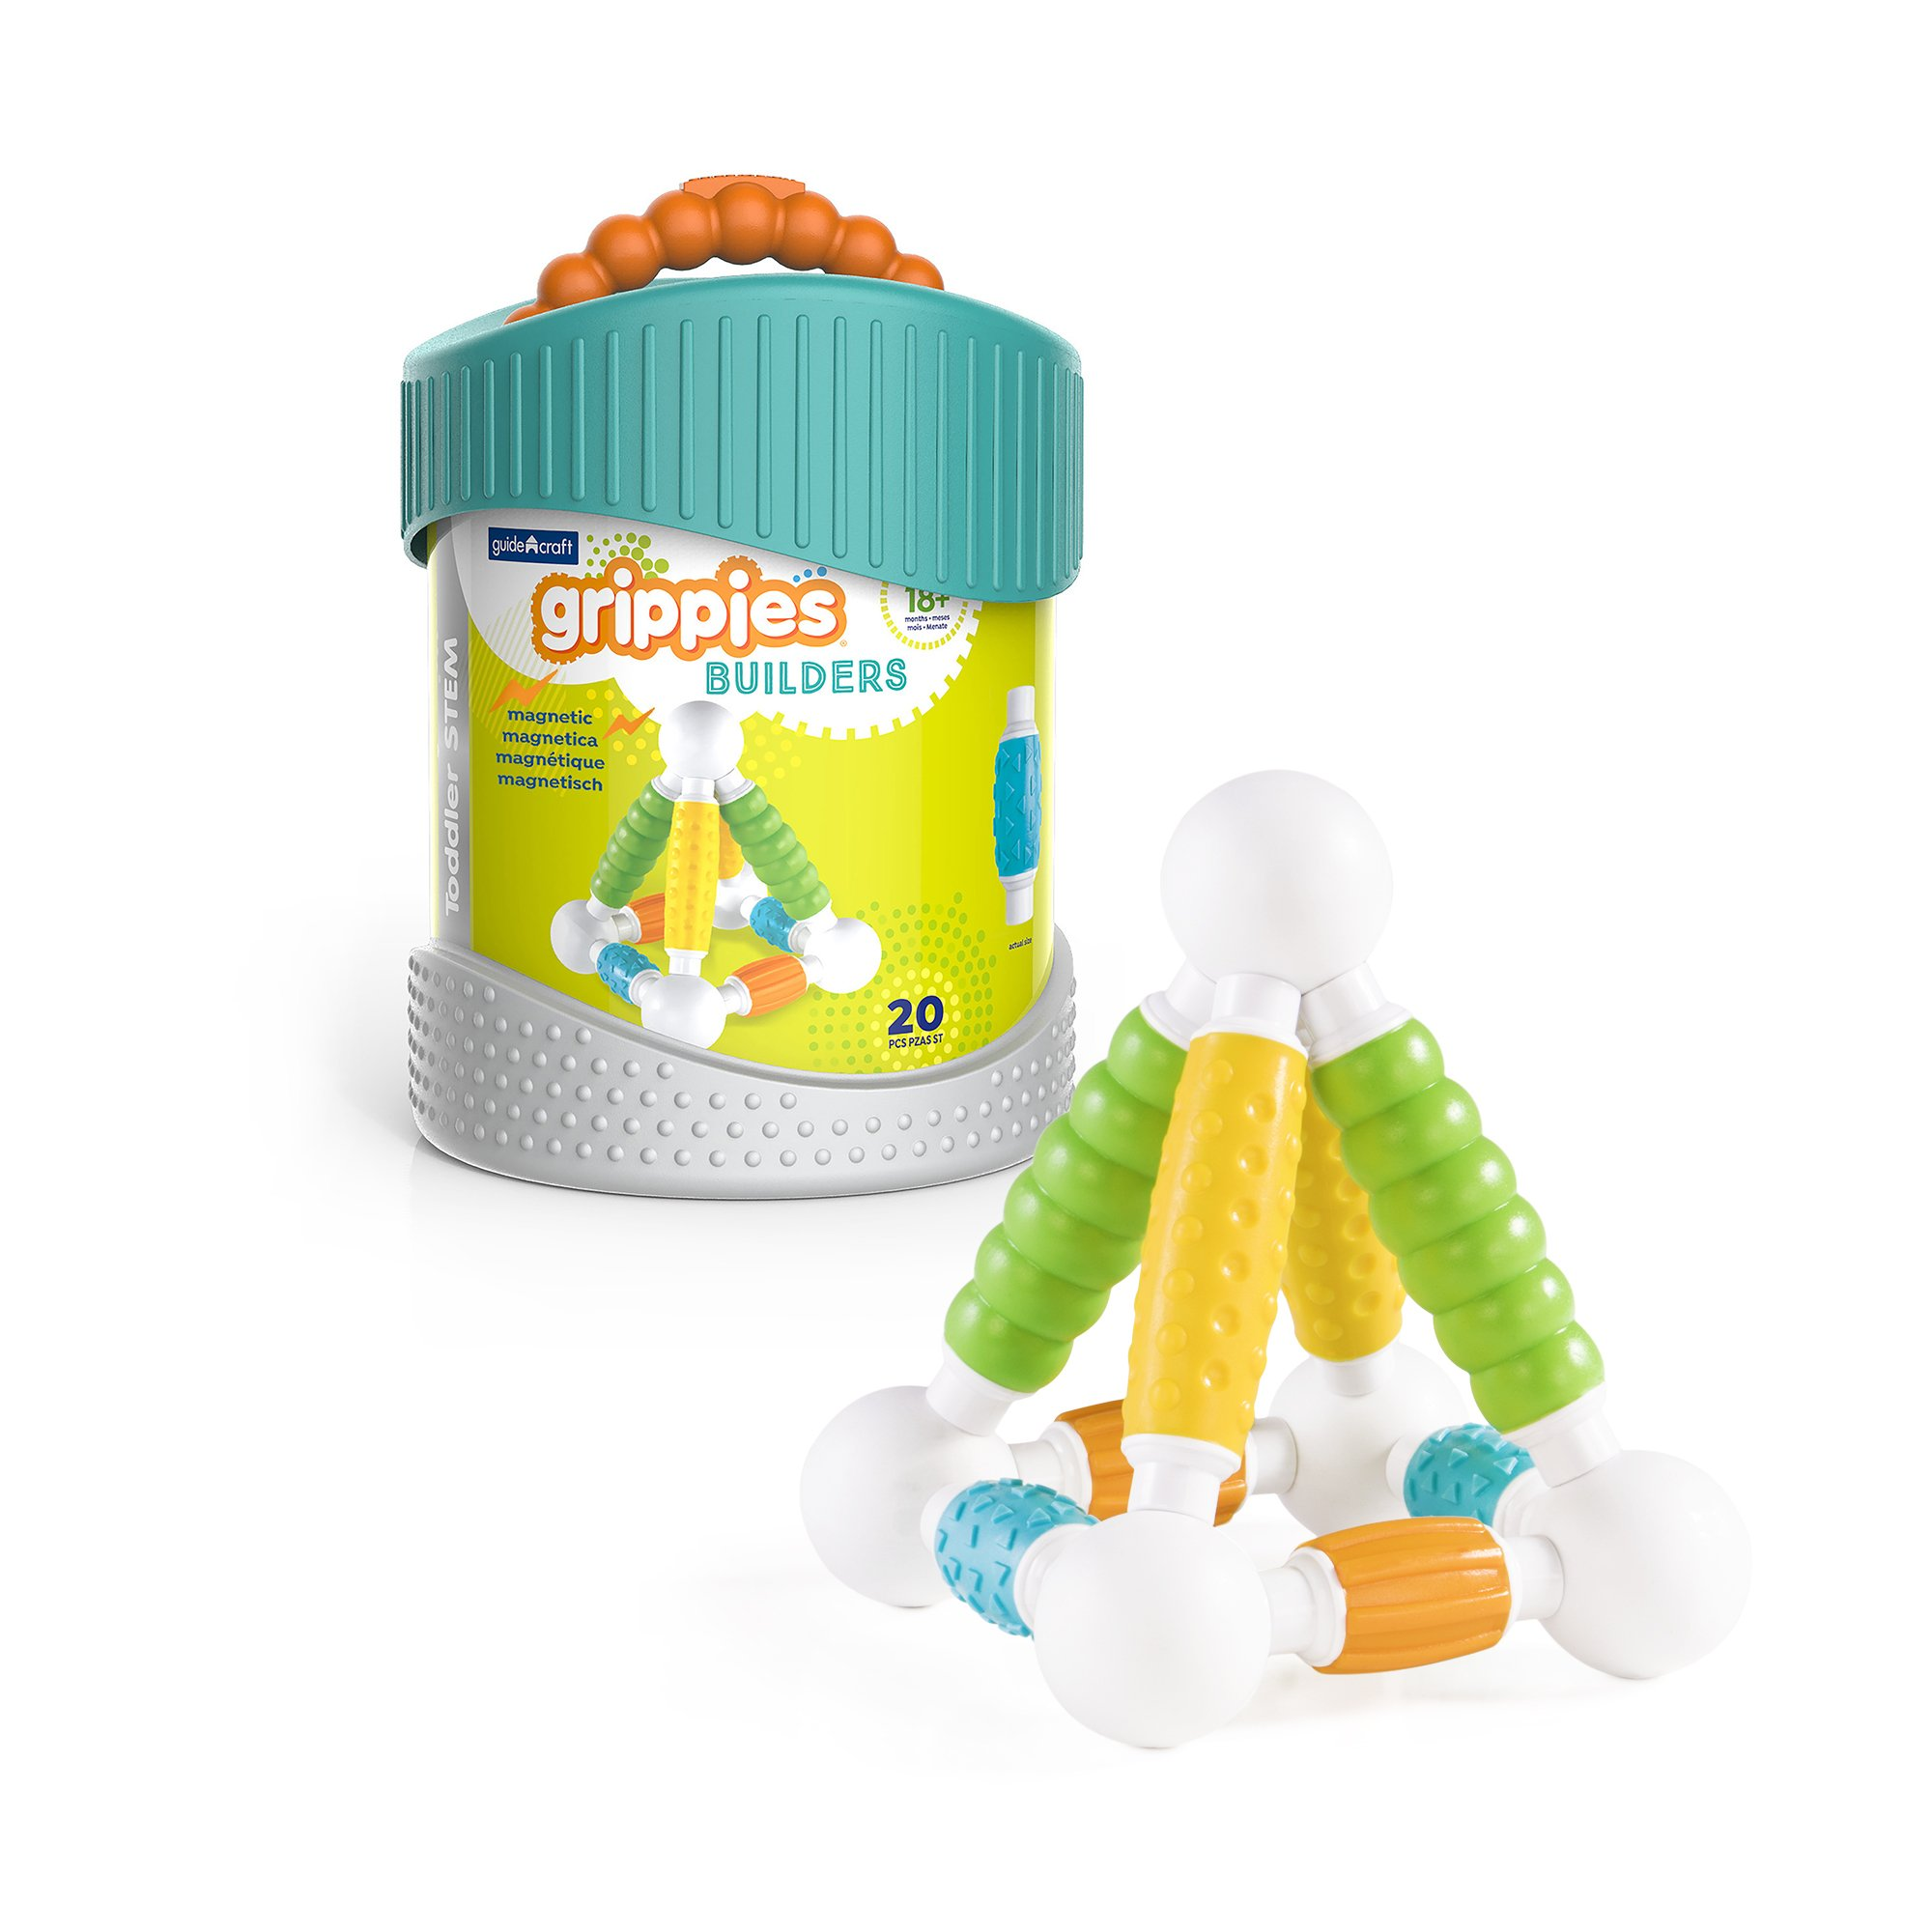 Guidecraft Grippies Builders - 20 Piece Set, Tactile STEM Soft Grip Magnetic Building Toy for Toddlers